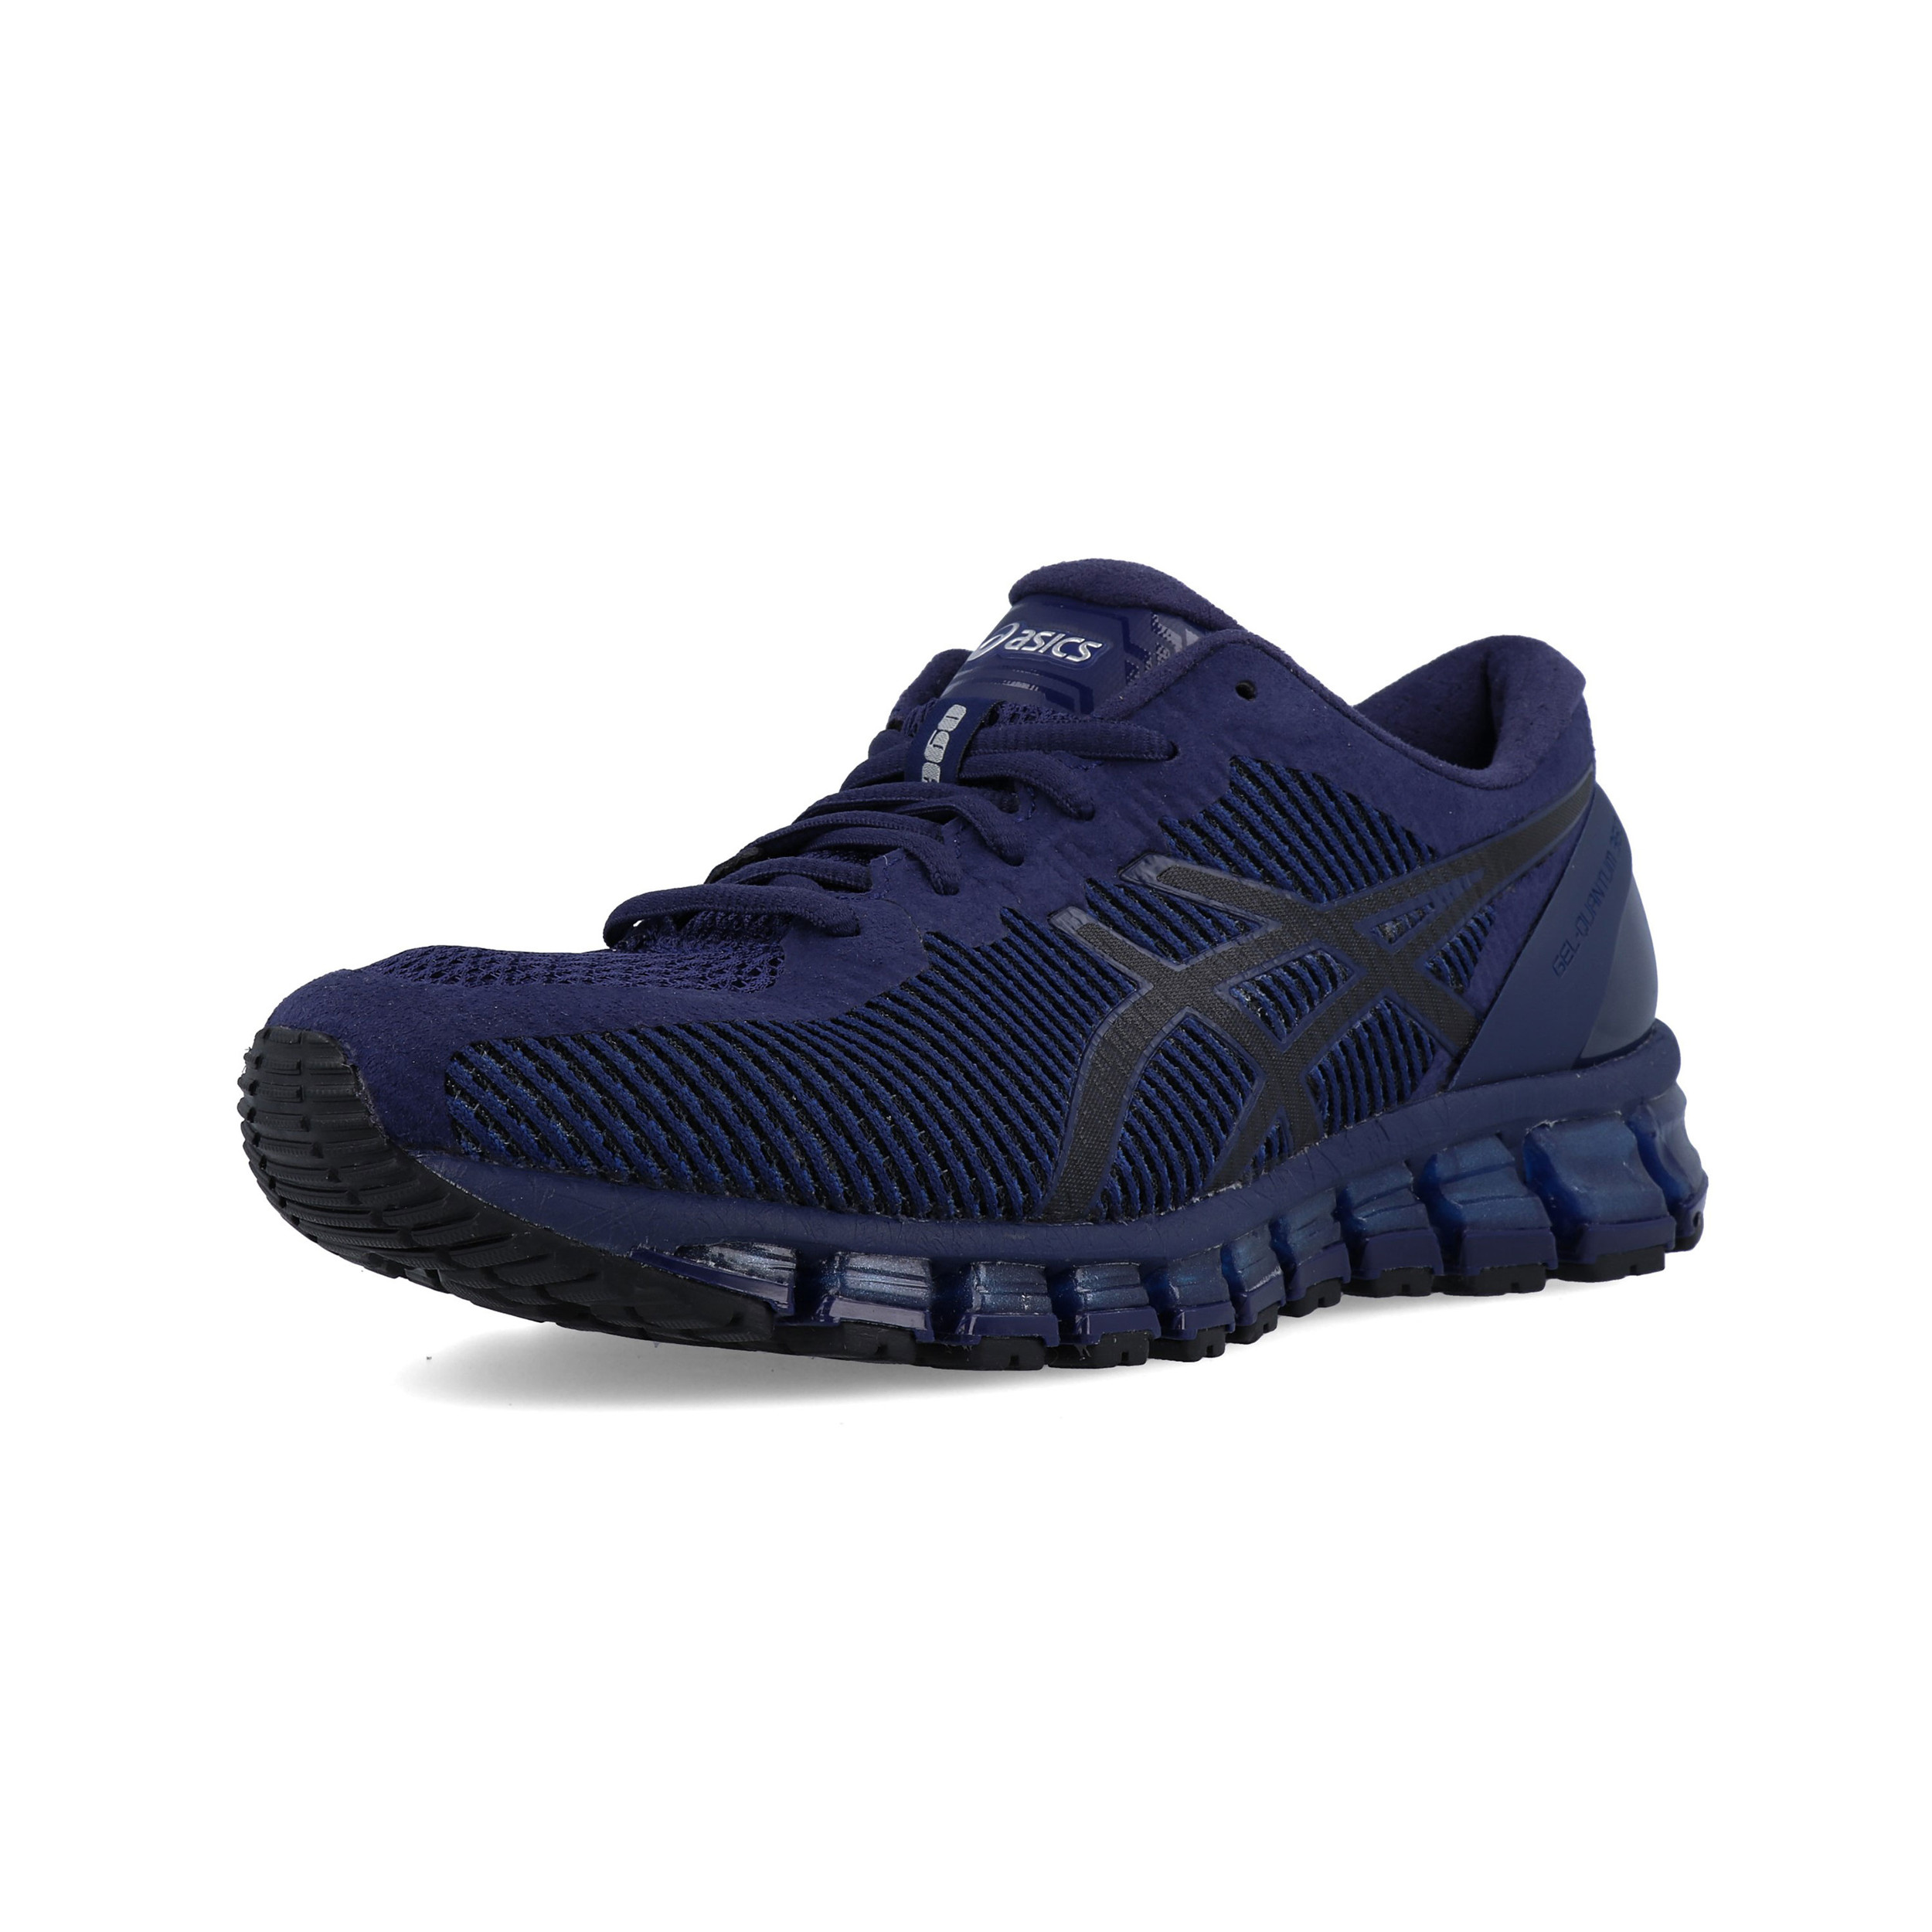 huge selection of d3e3f 7c5de Details about Asics Mens Gel-Quantum 360 Running Shoes Trainers Sneakers  Navy Blue Sports